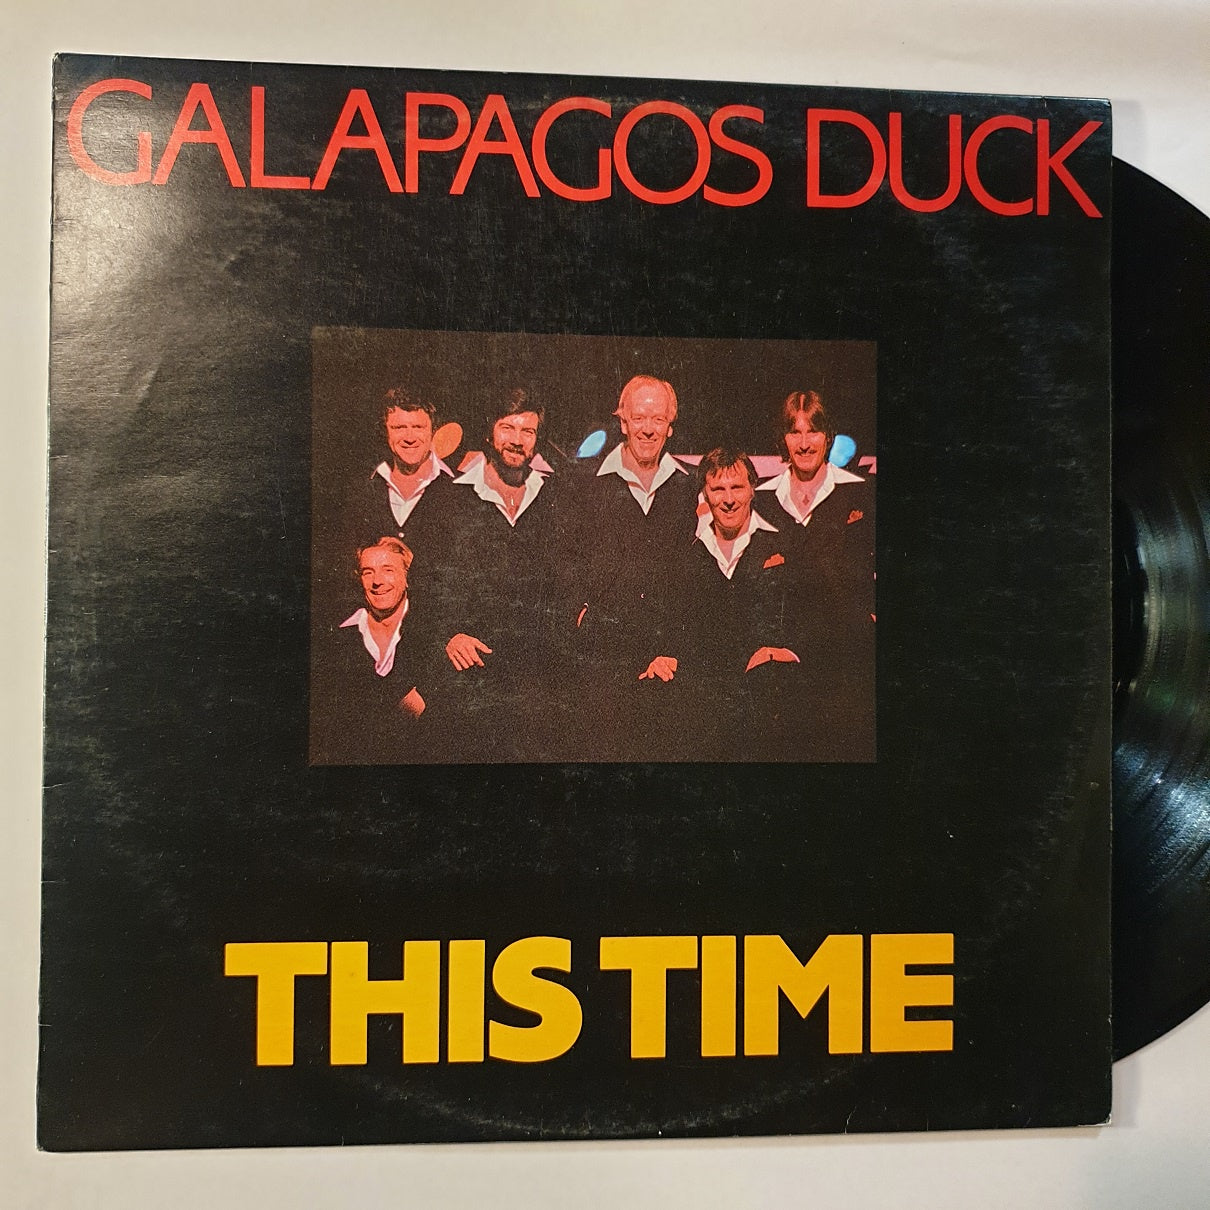 Galapagos Duck, This Time LP (2nd Hand)